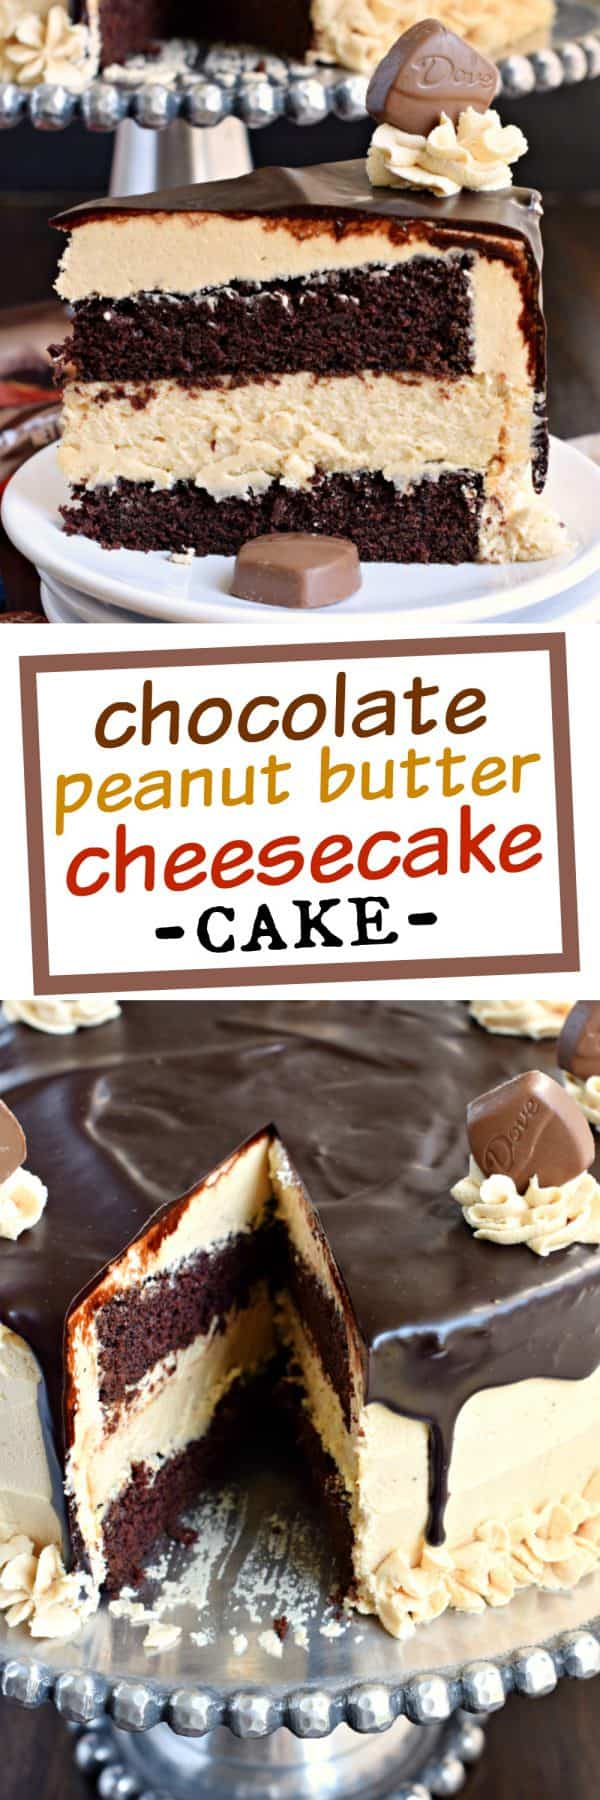 Chocolate Peanut Butter Cheesecake Cake with DOVE Chocolate - Shugary ...